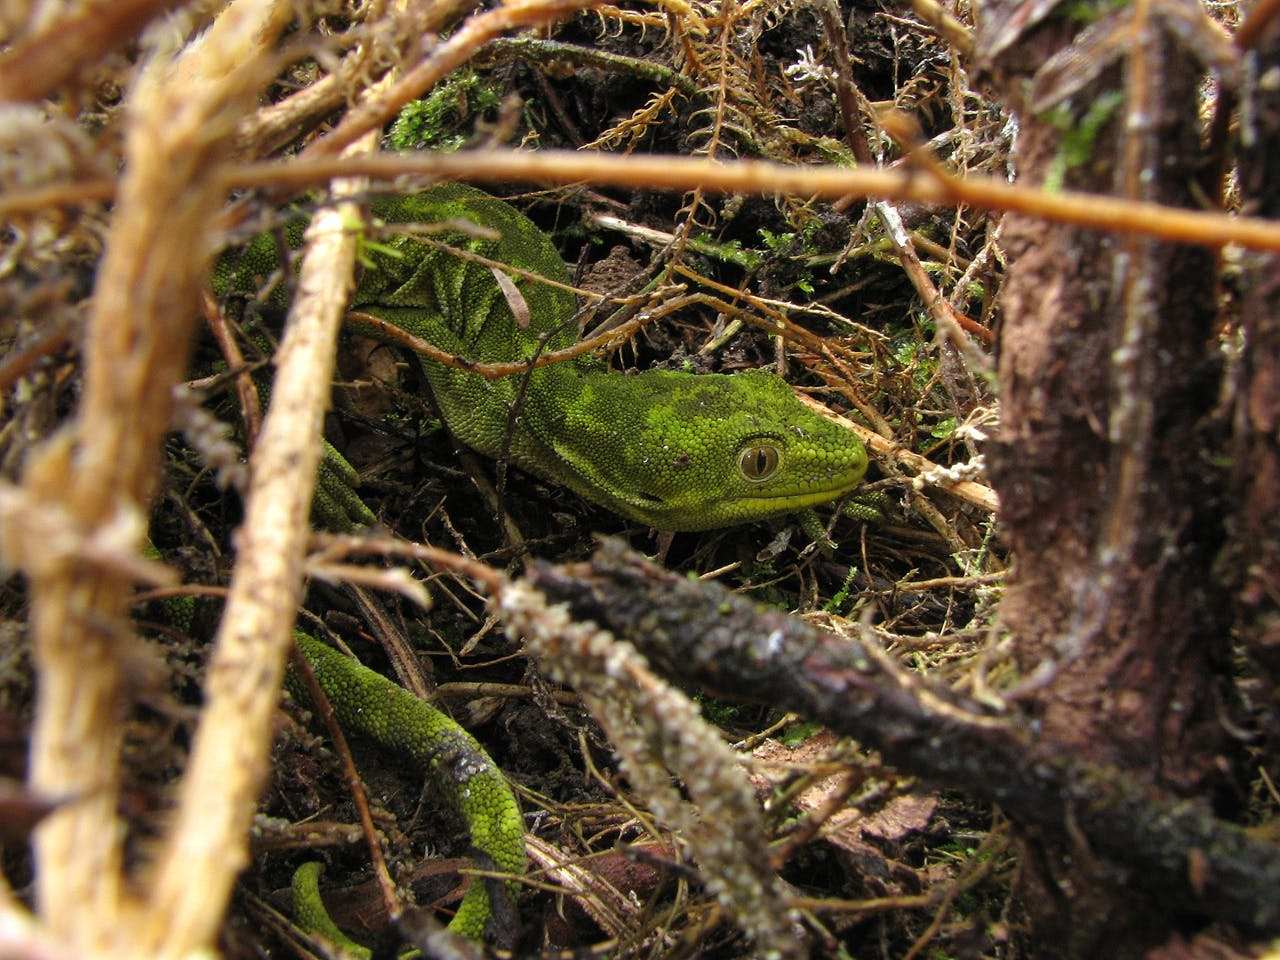 The Mt Mantell area is the meeting place of two green gecko species, the West Coast green gecko and the Nelson green gecko. Photo: Steuart Laing